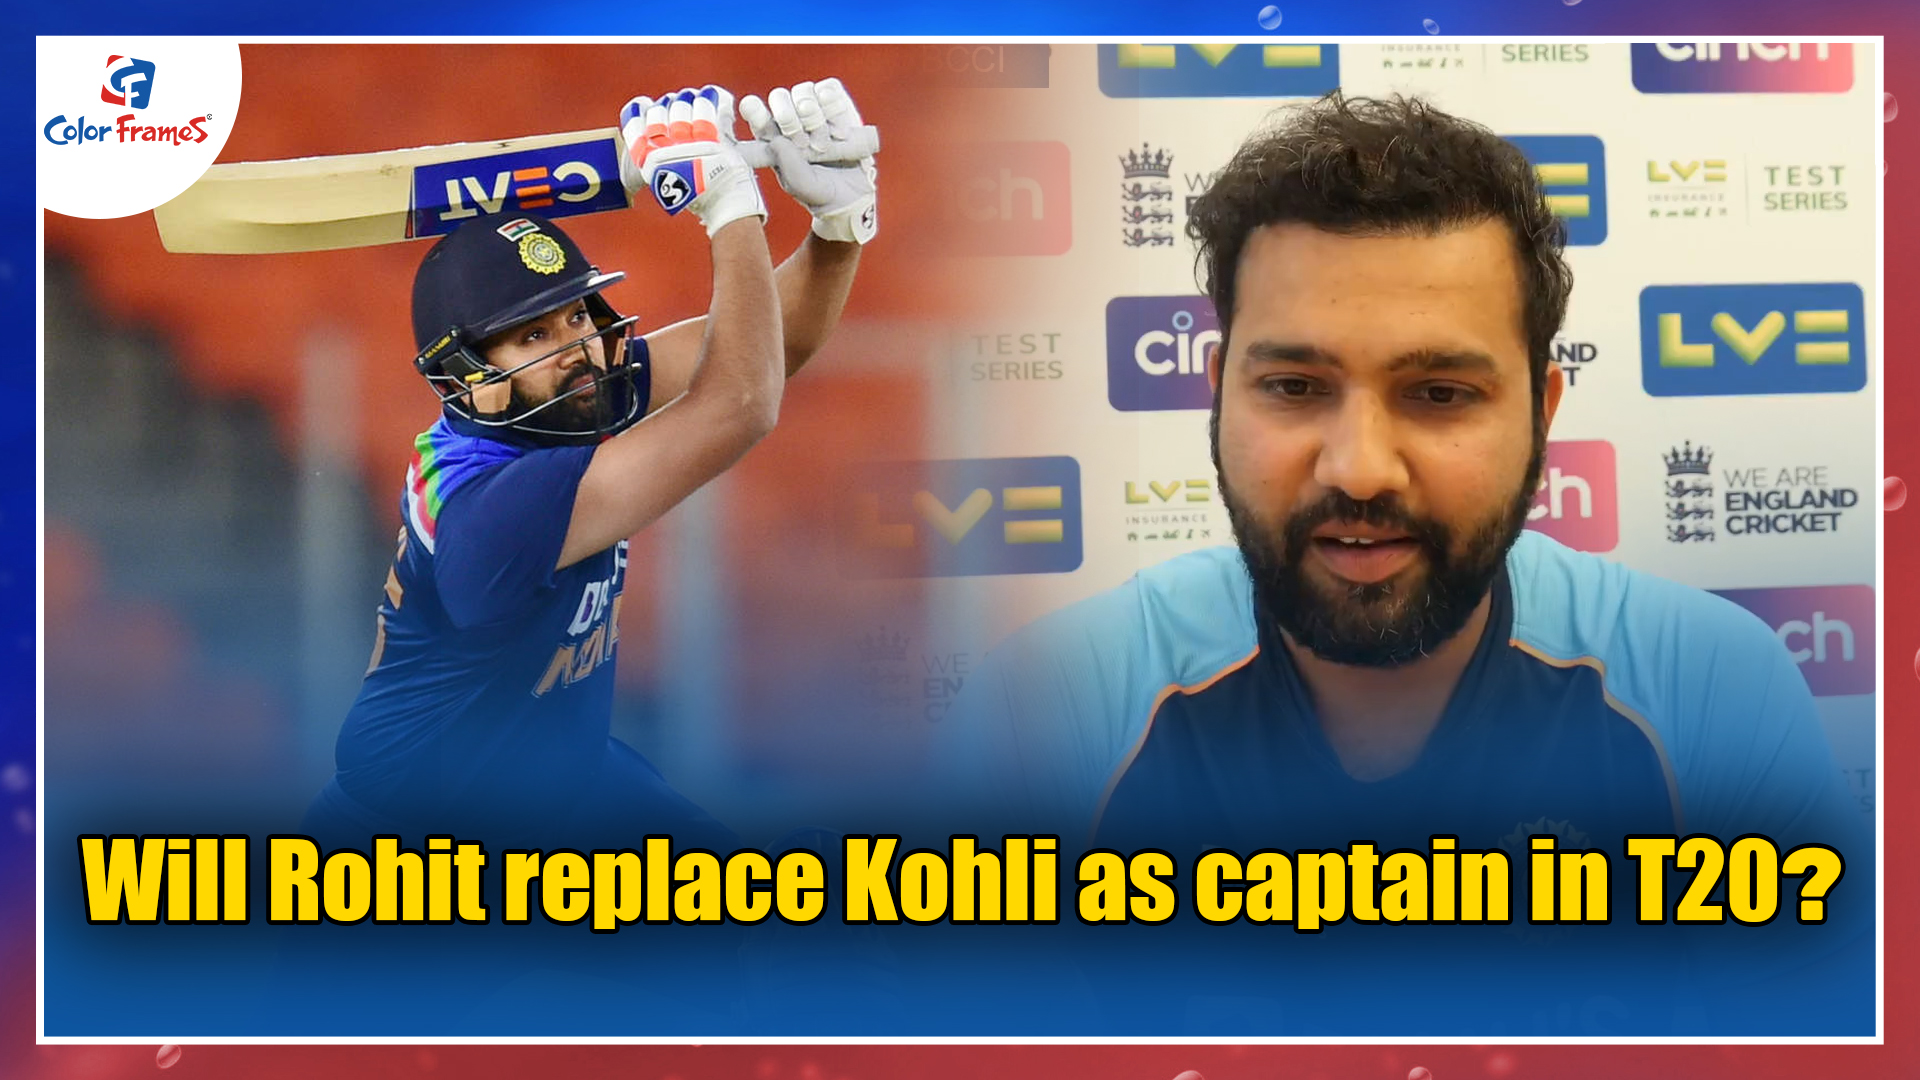 Will Rohit replace Kohli as captain in T20?